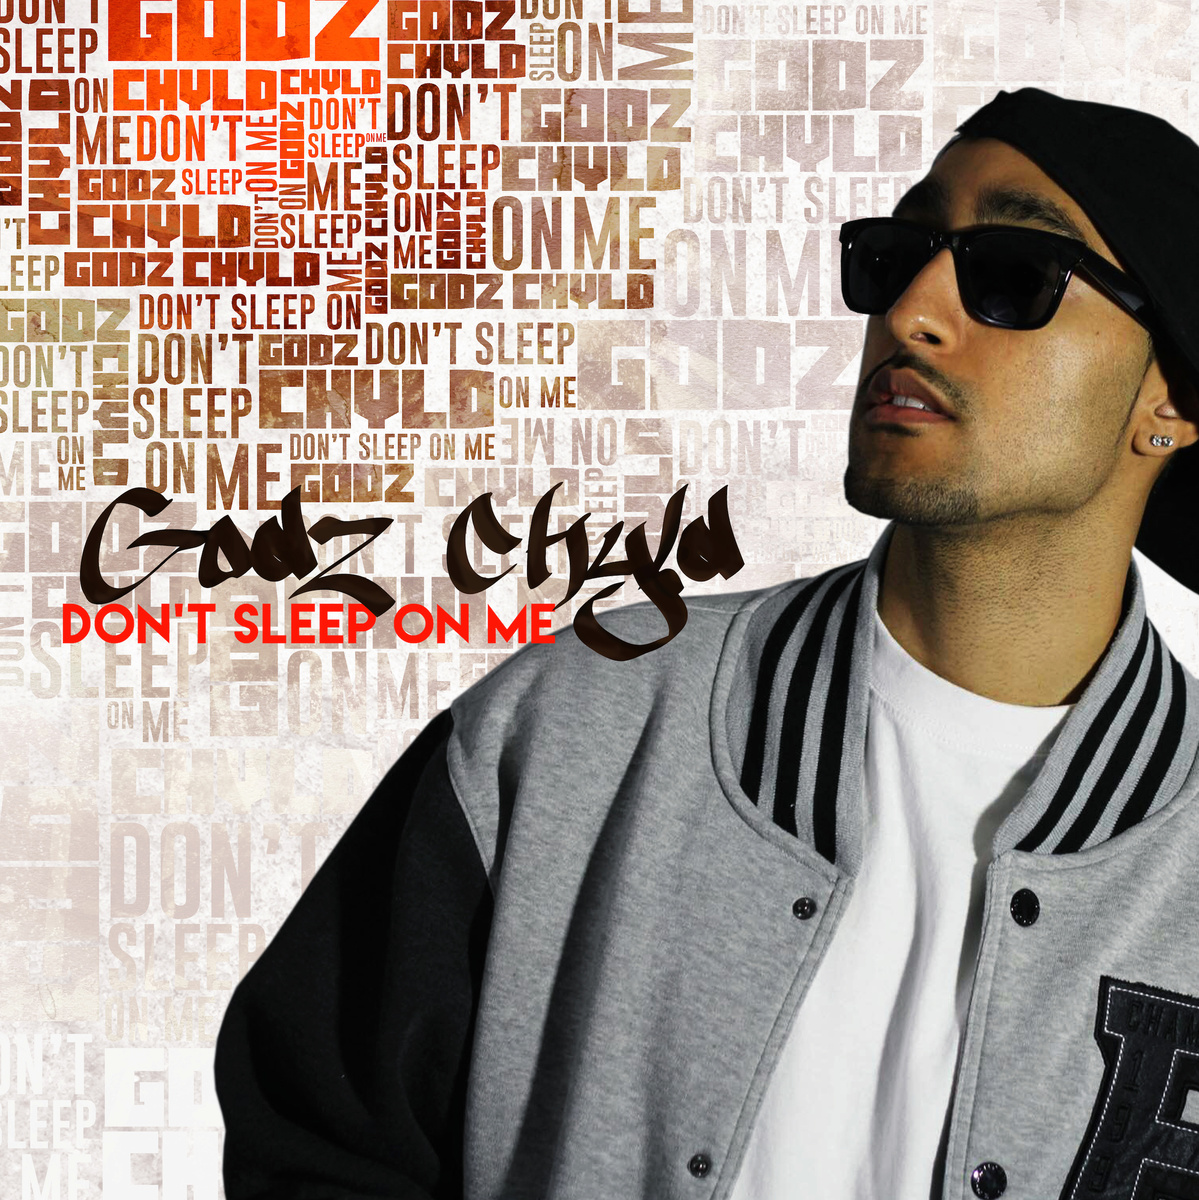 G.C. [GODZ CHYLD] – DON'T SLEEP ON ME EP Review